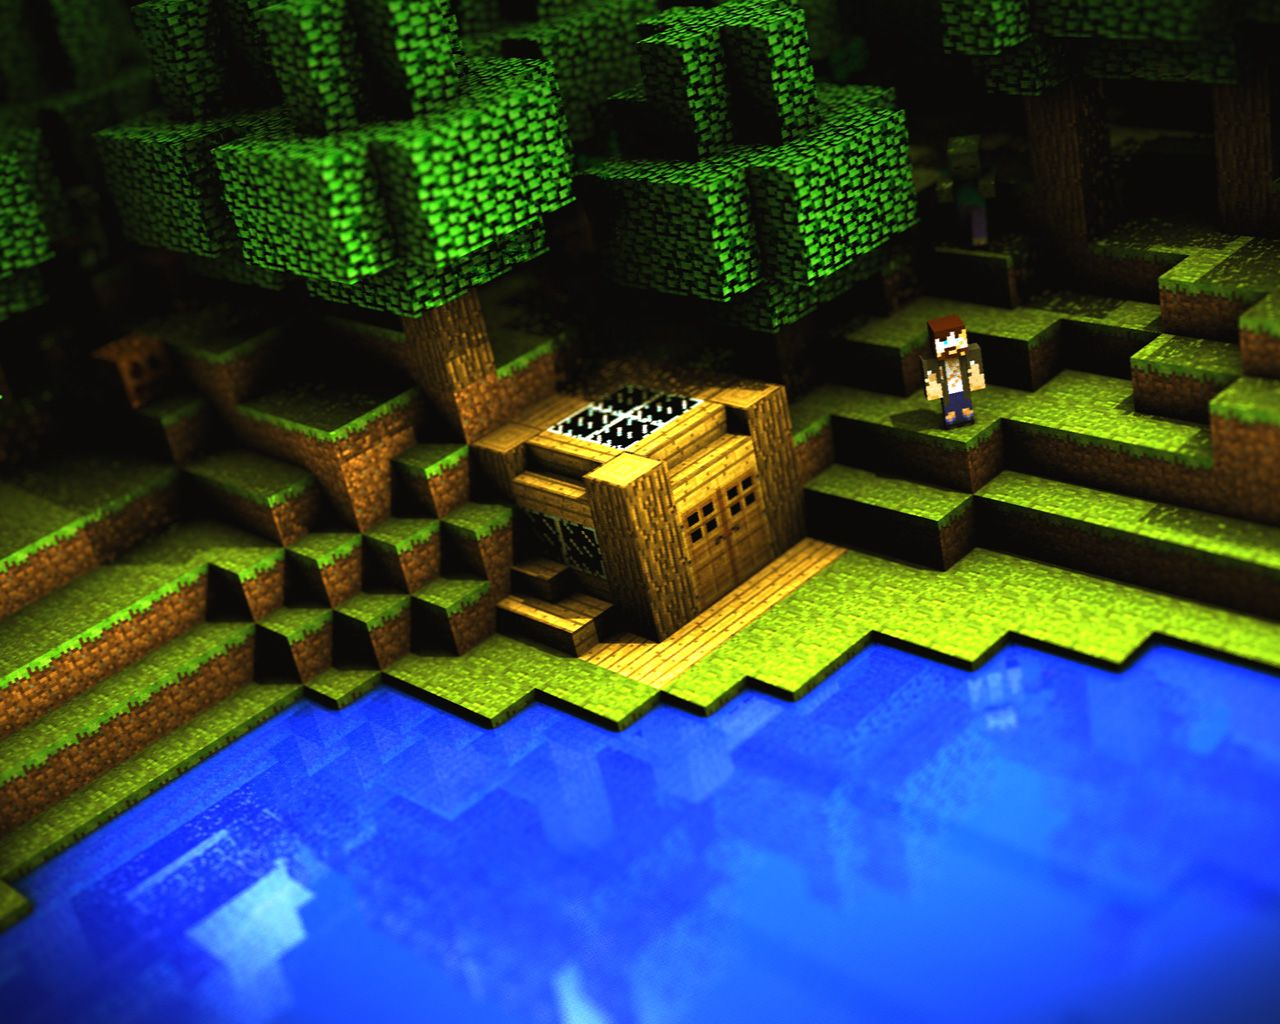 Cool Wallpaper Minecraft Colorful - aa9d278339a054c29c1e89fdbe12c92b  Perfect Image Reference_45430.jpg